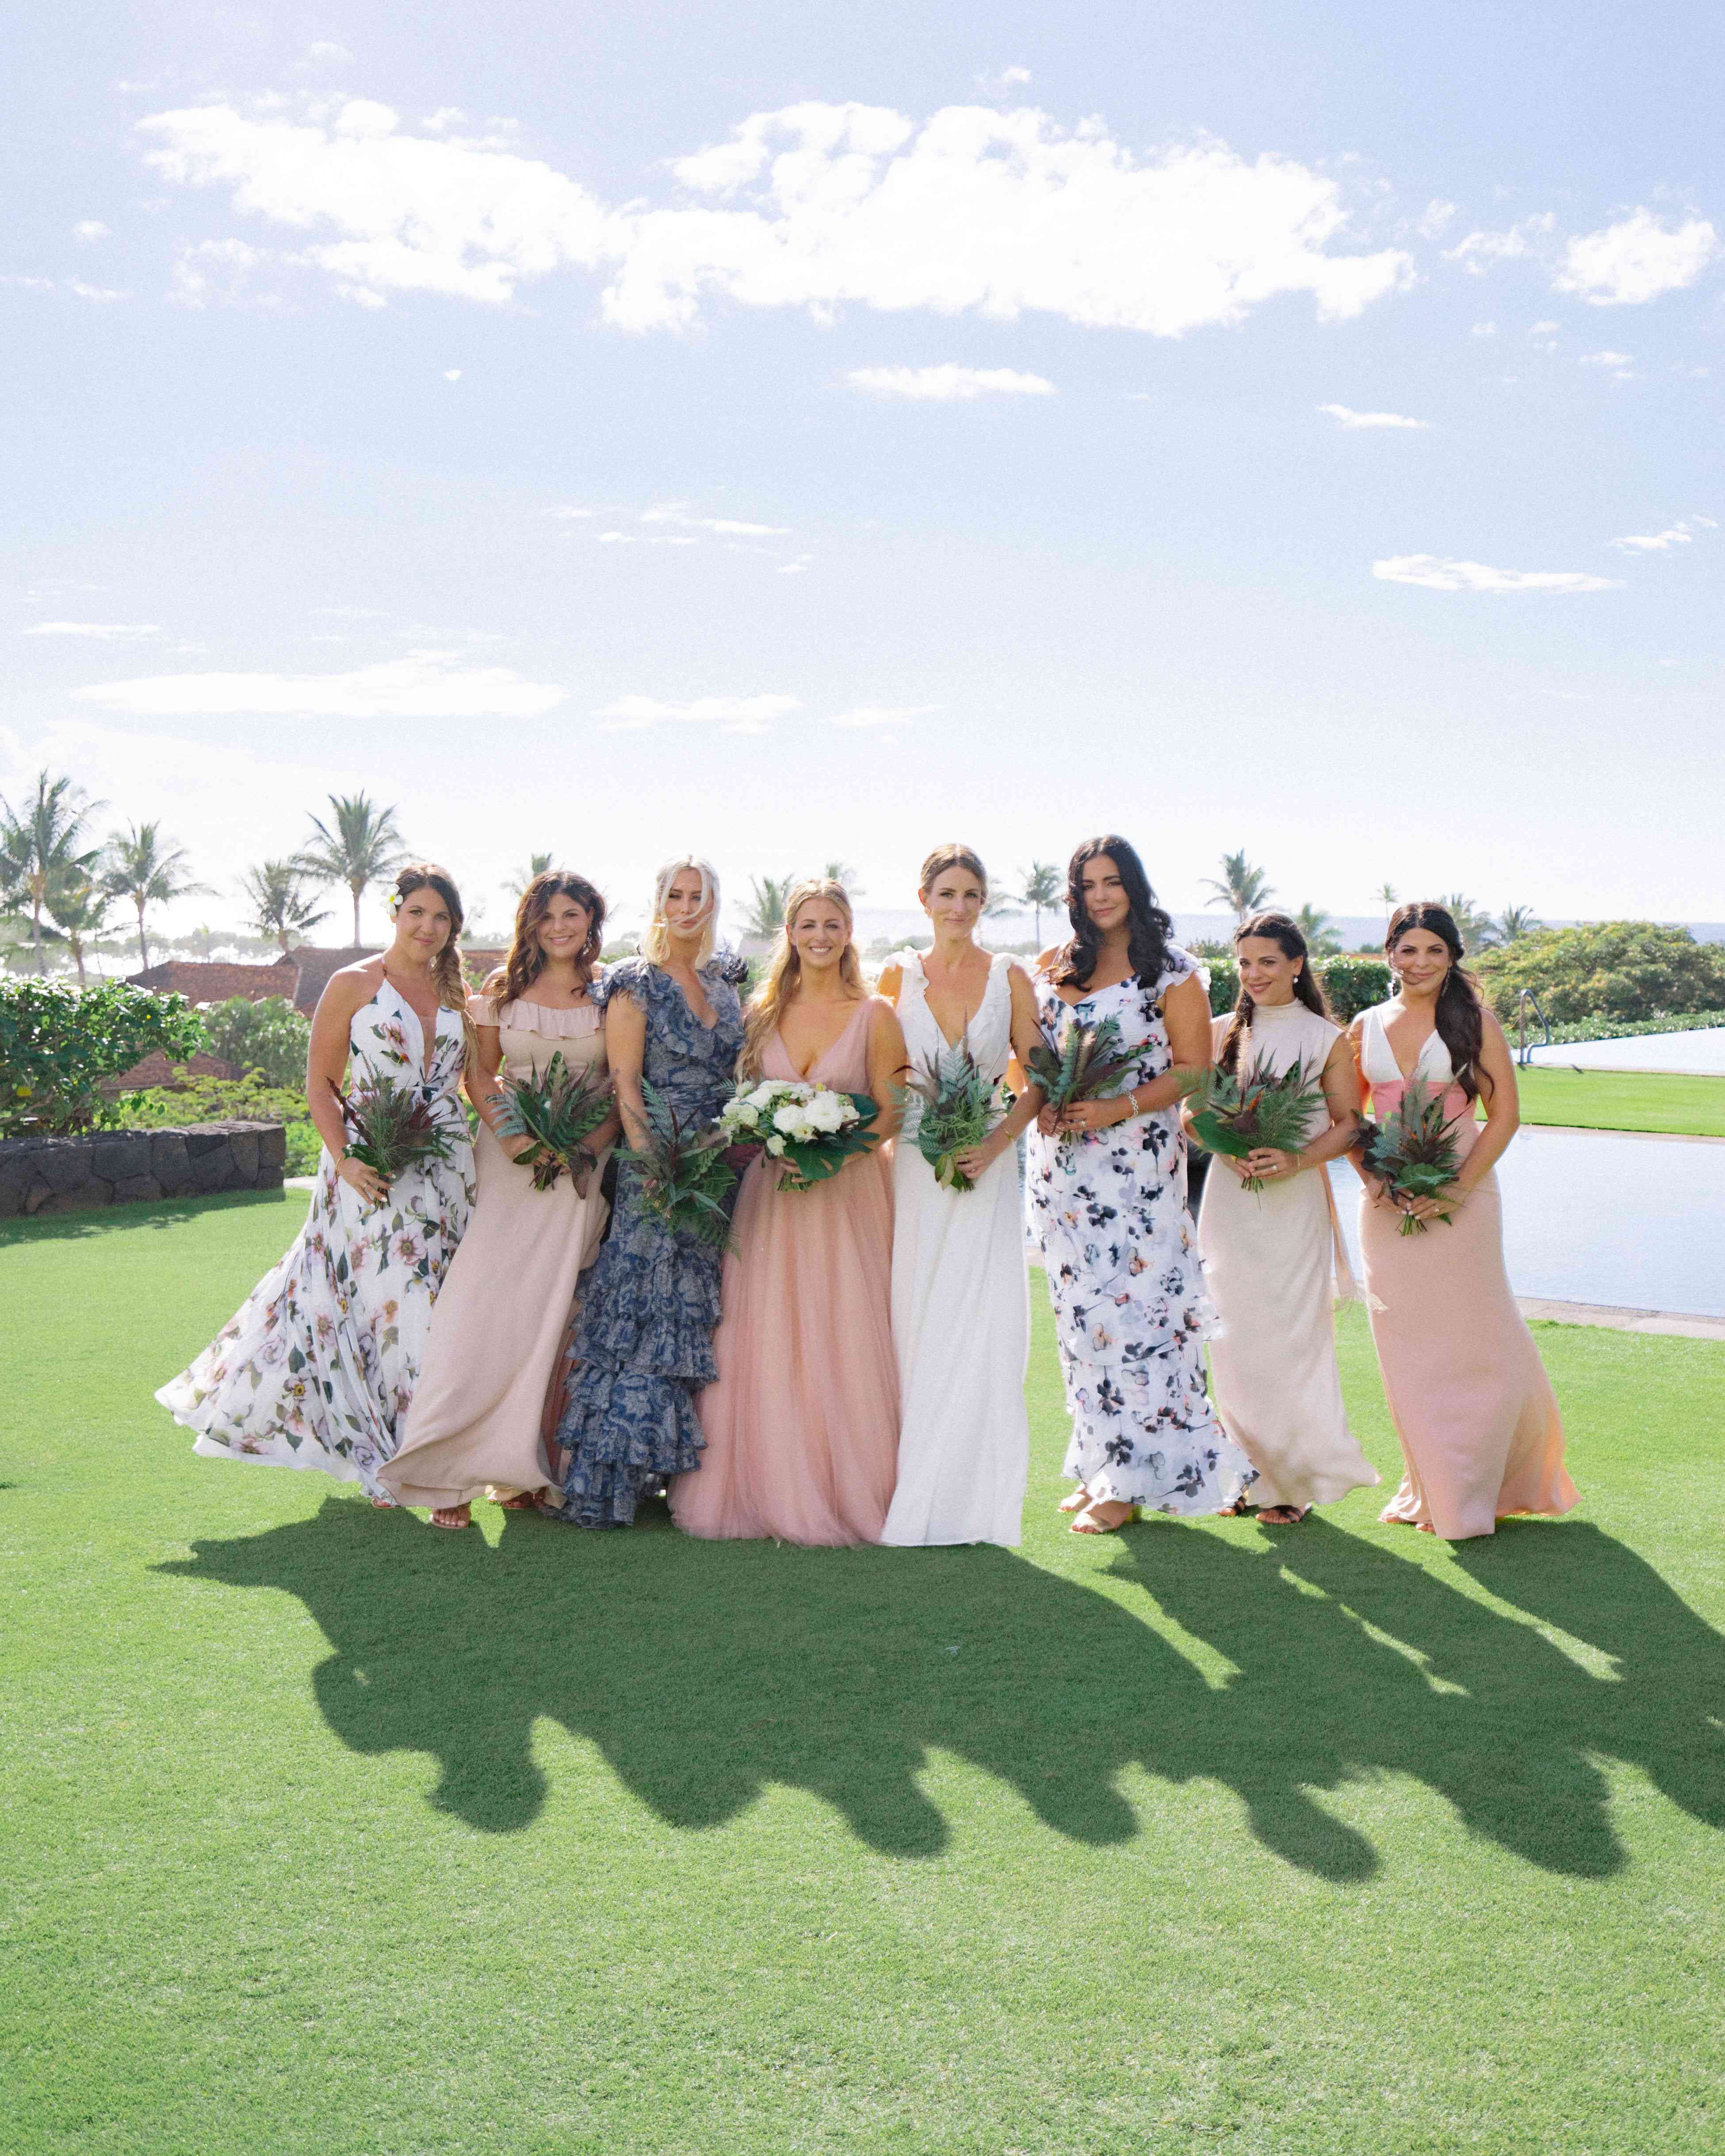 Portrait of the bride and her bridesmaids